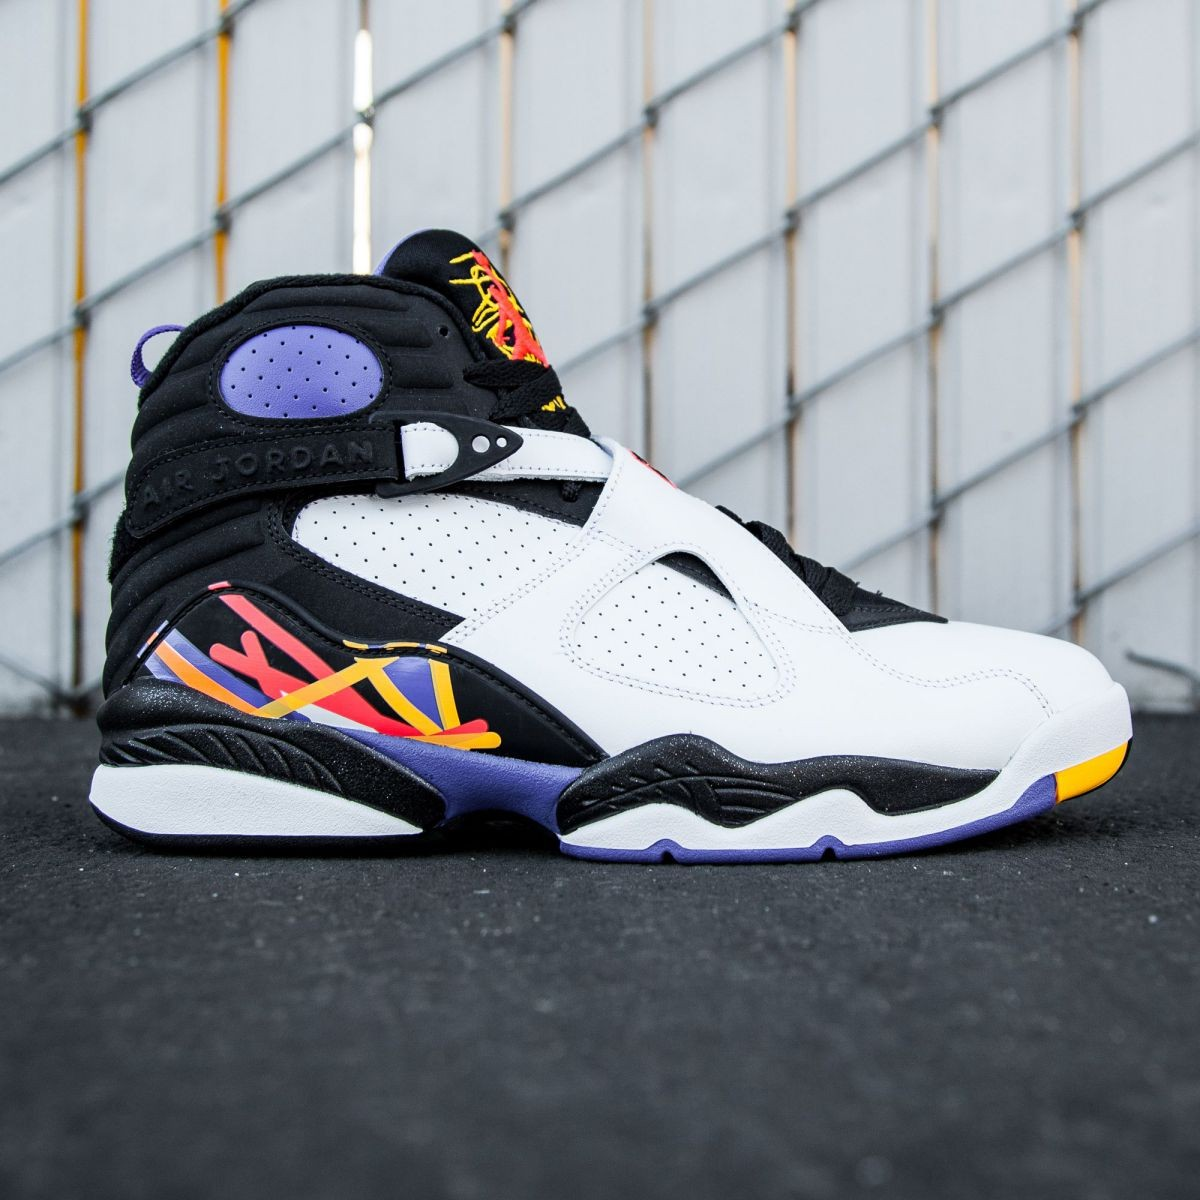 66e444044cd238 Jordan Men Air Jordan 8 Retro - Three-Peat white infrared 23 black bright  concord